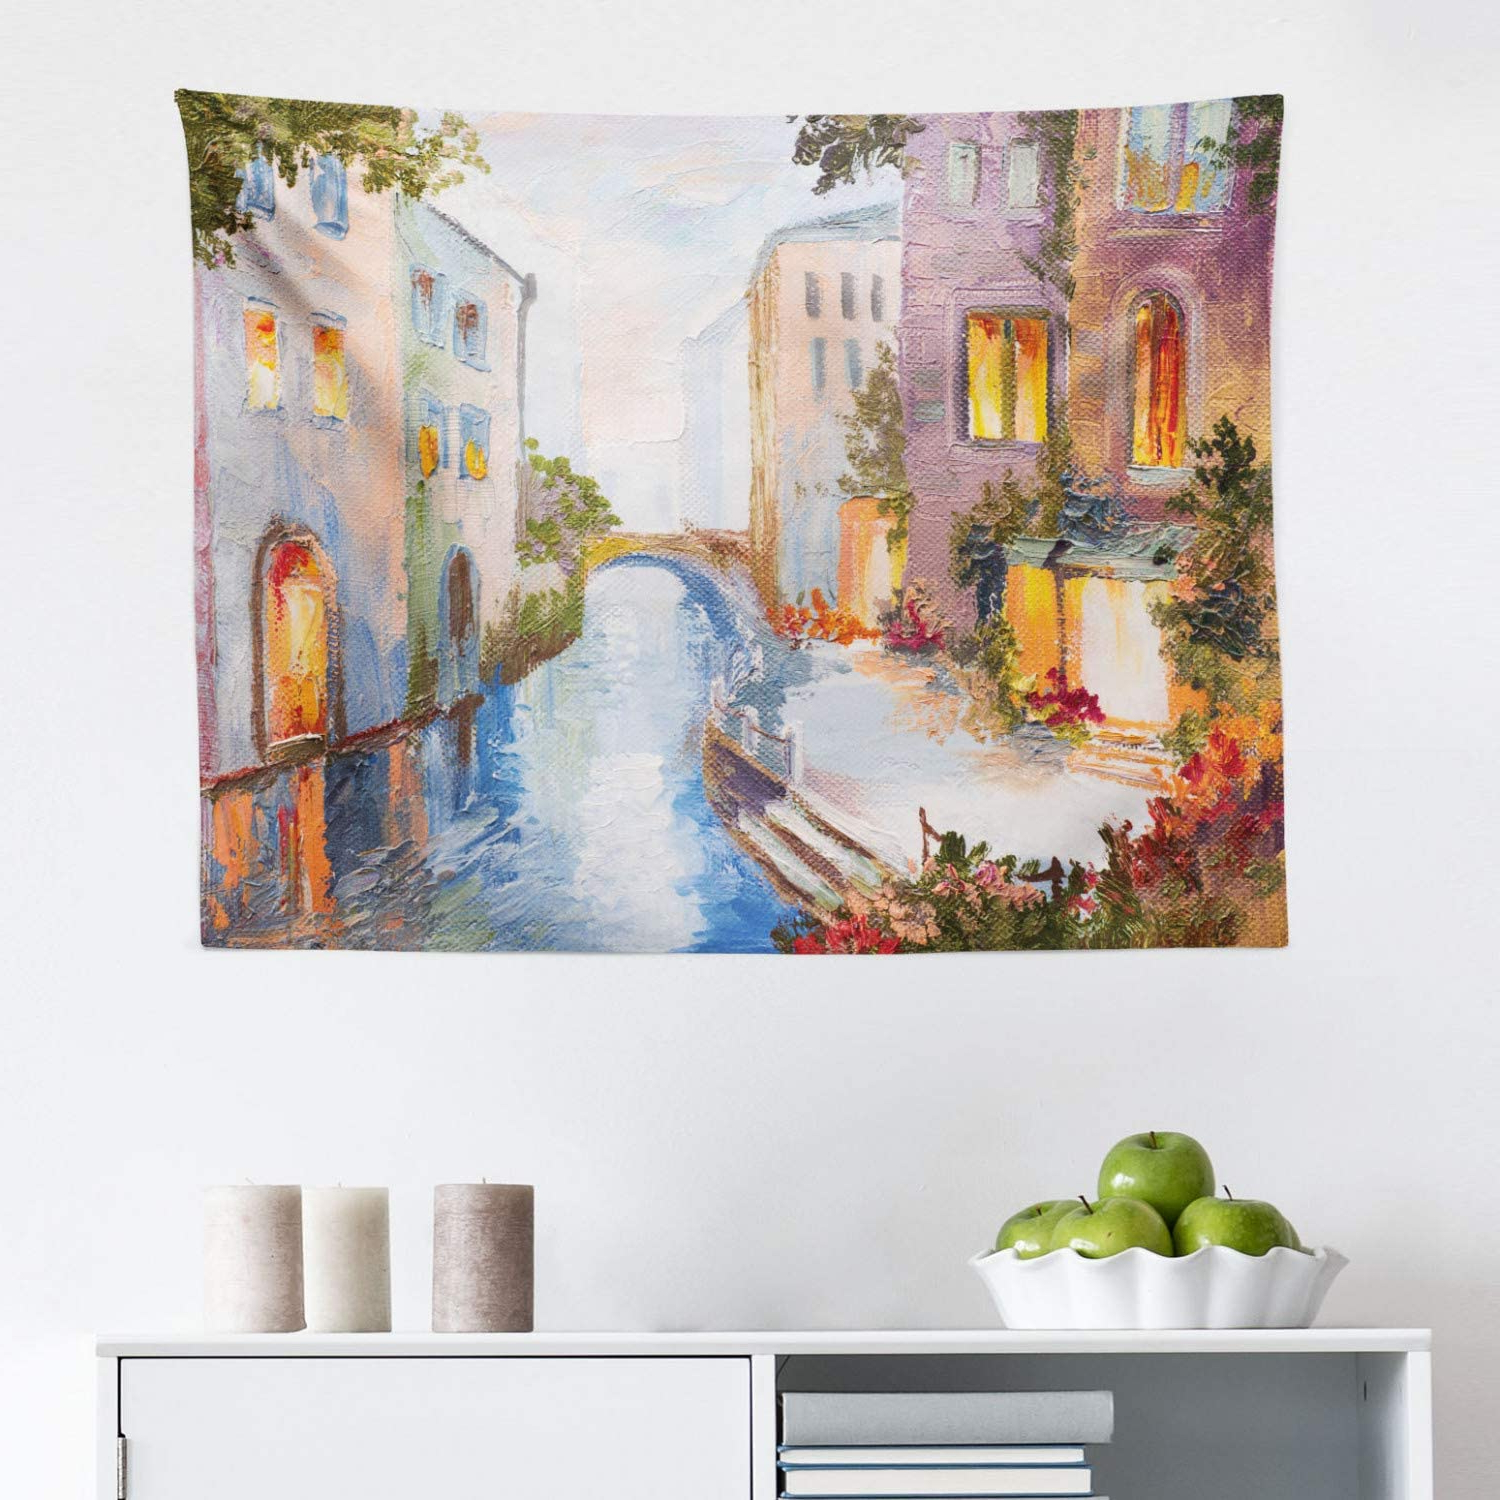 Most Recent Blended Fabric Italian Wall Hangings With Lunarable Venice Tapestry, Historical City Vintage Houses Water Canal Venice Italy Oil Painting, Fabric Wall Hanging Decor For Bedroom Living Room (View 5 of 20)